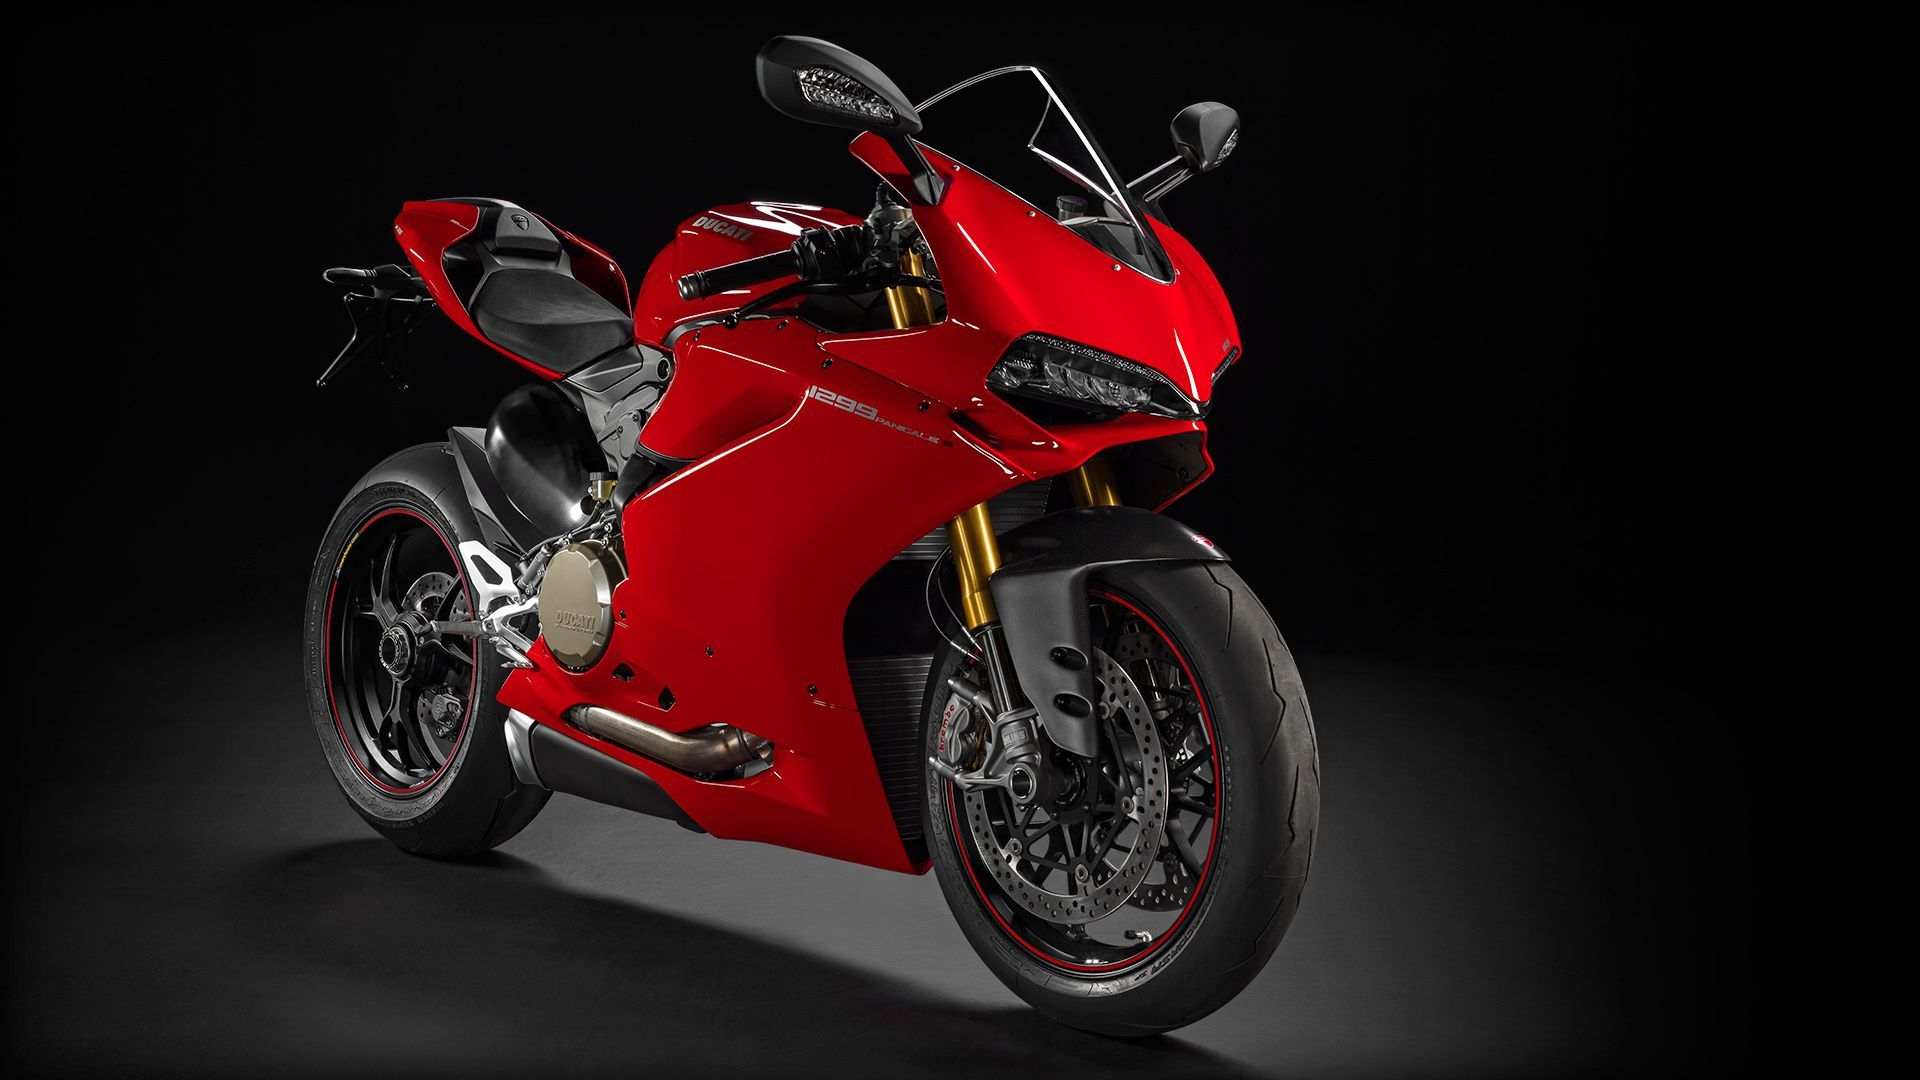 2015 Ducati 1299 Panigale S | 1299 Panigale S - Italian Styling